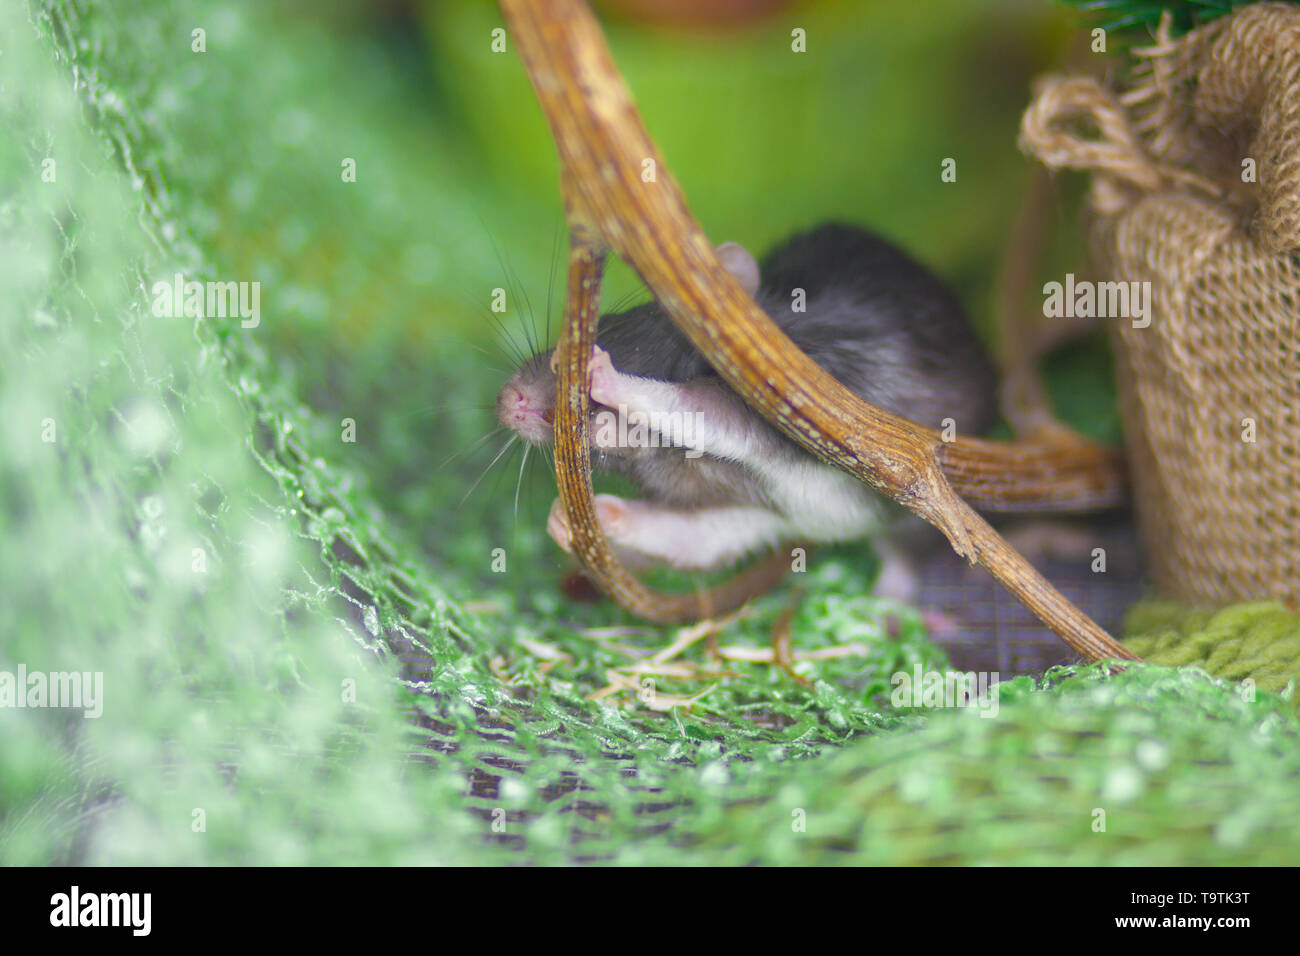 Mouse nibbles a twig. A gray rat bites a branch. The rodent eats the tree. - Stock Image